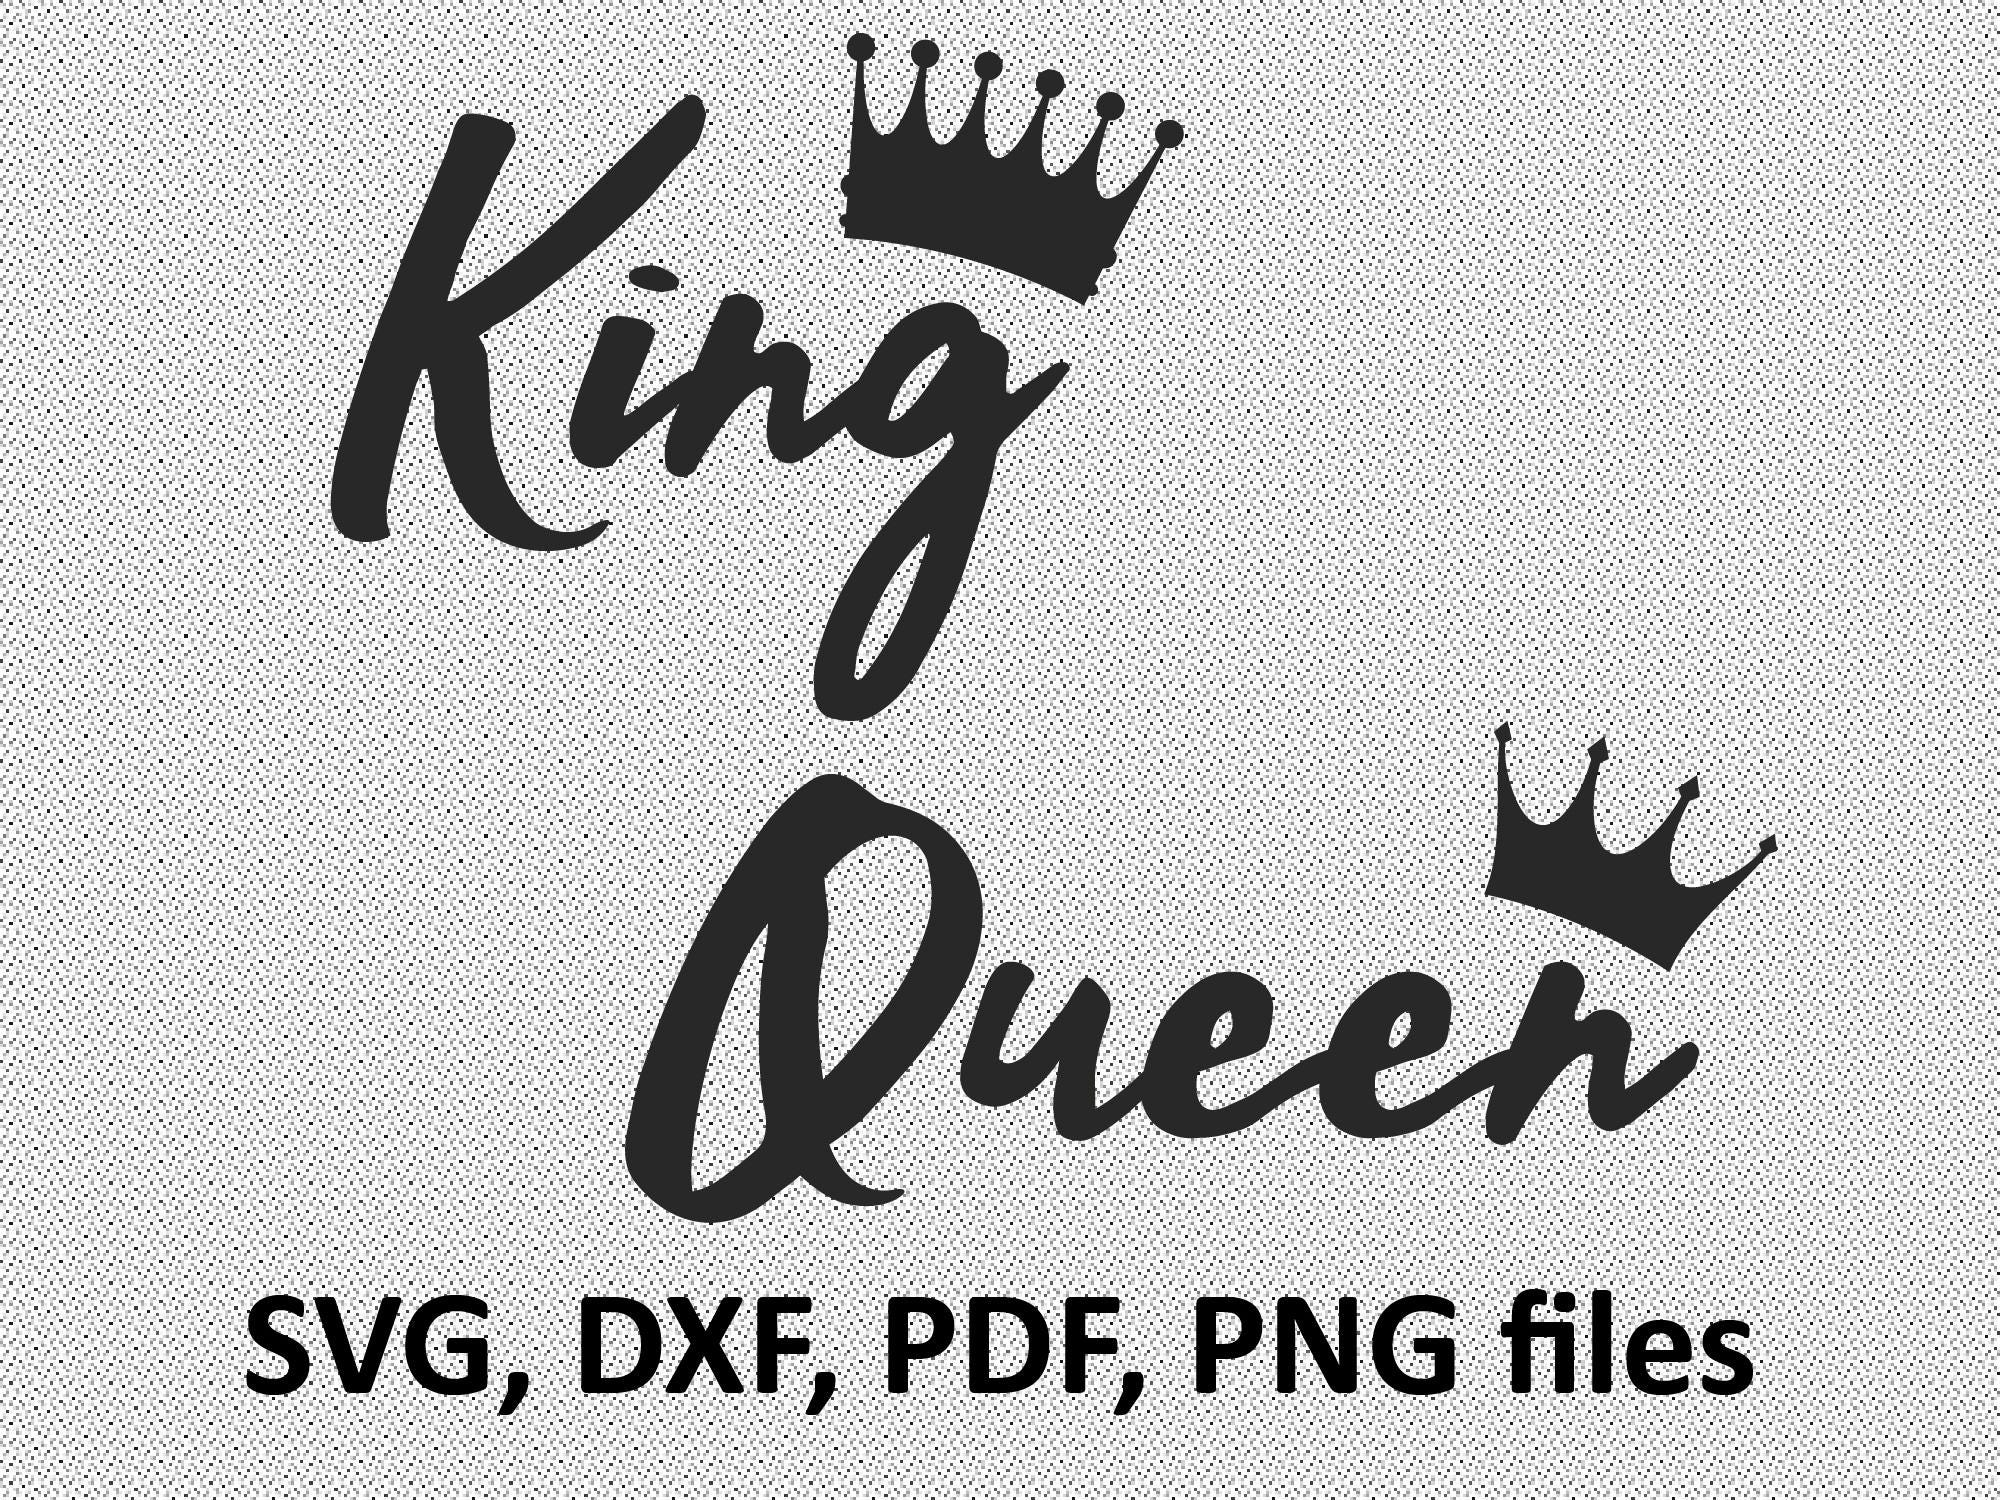 Her King Svg His Queen Svg King And Queen Svg Svg Design: Queen King Svg Files Crown Cutting File Silhouette Cricut